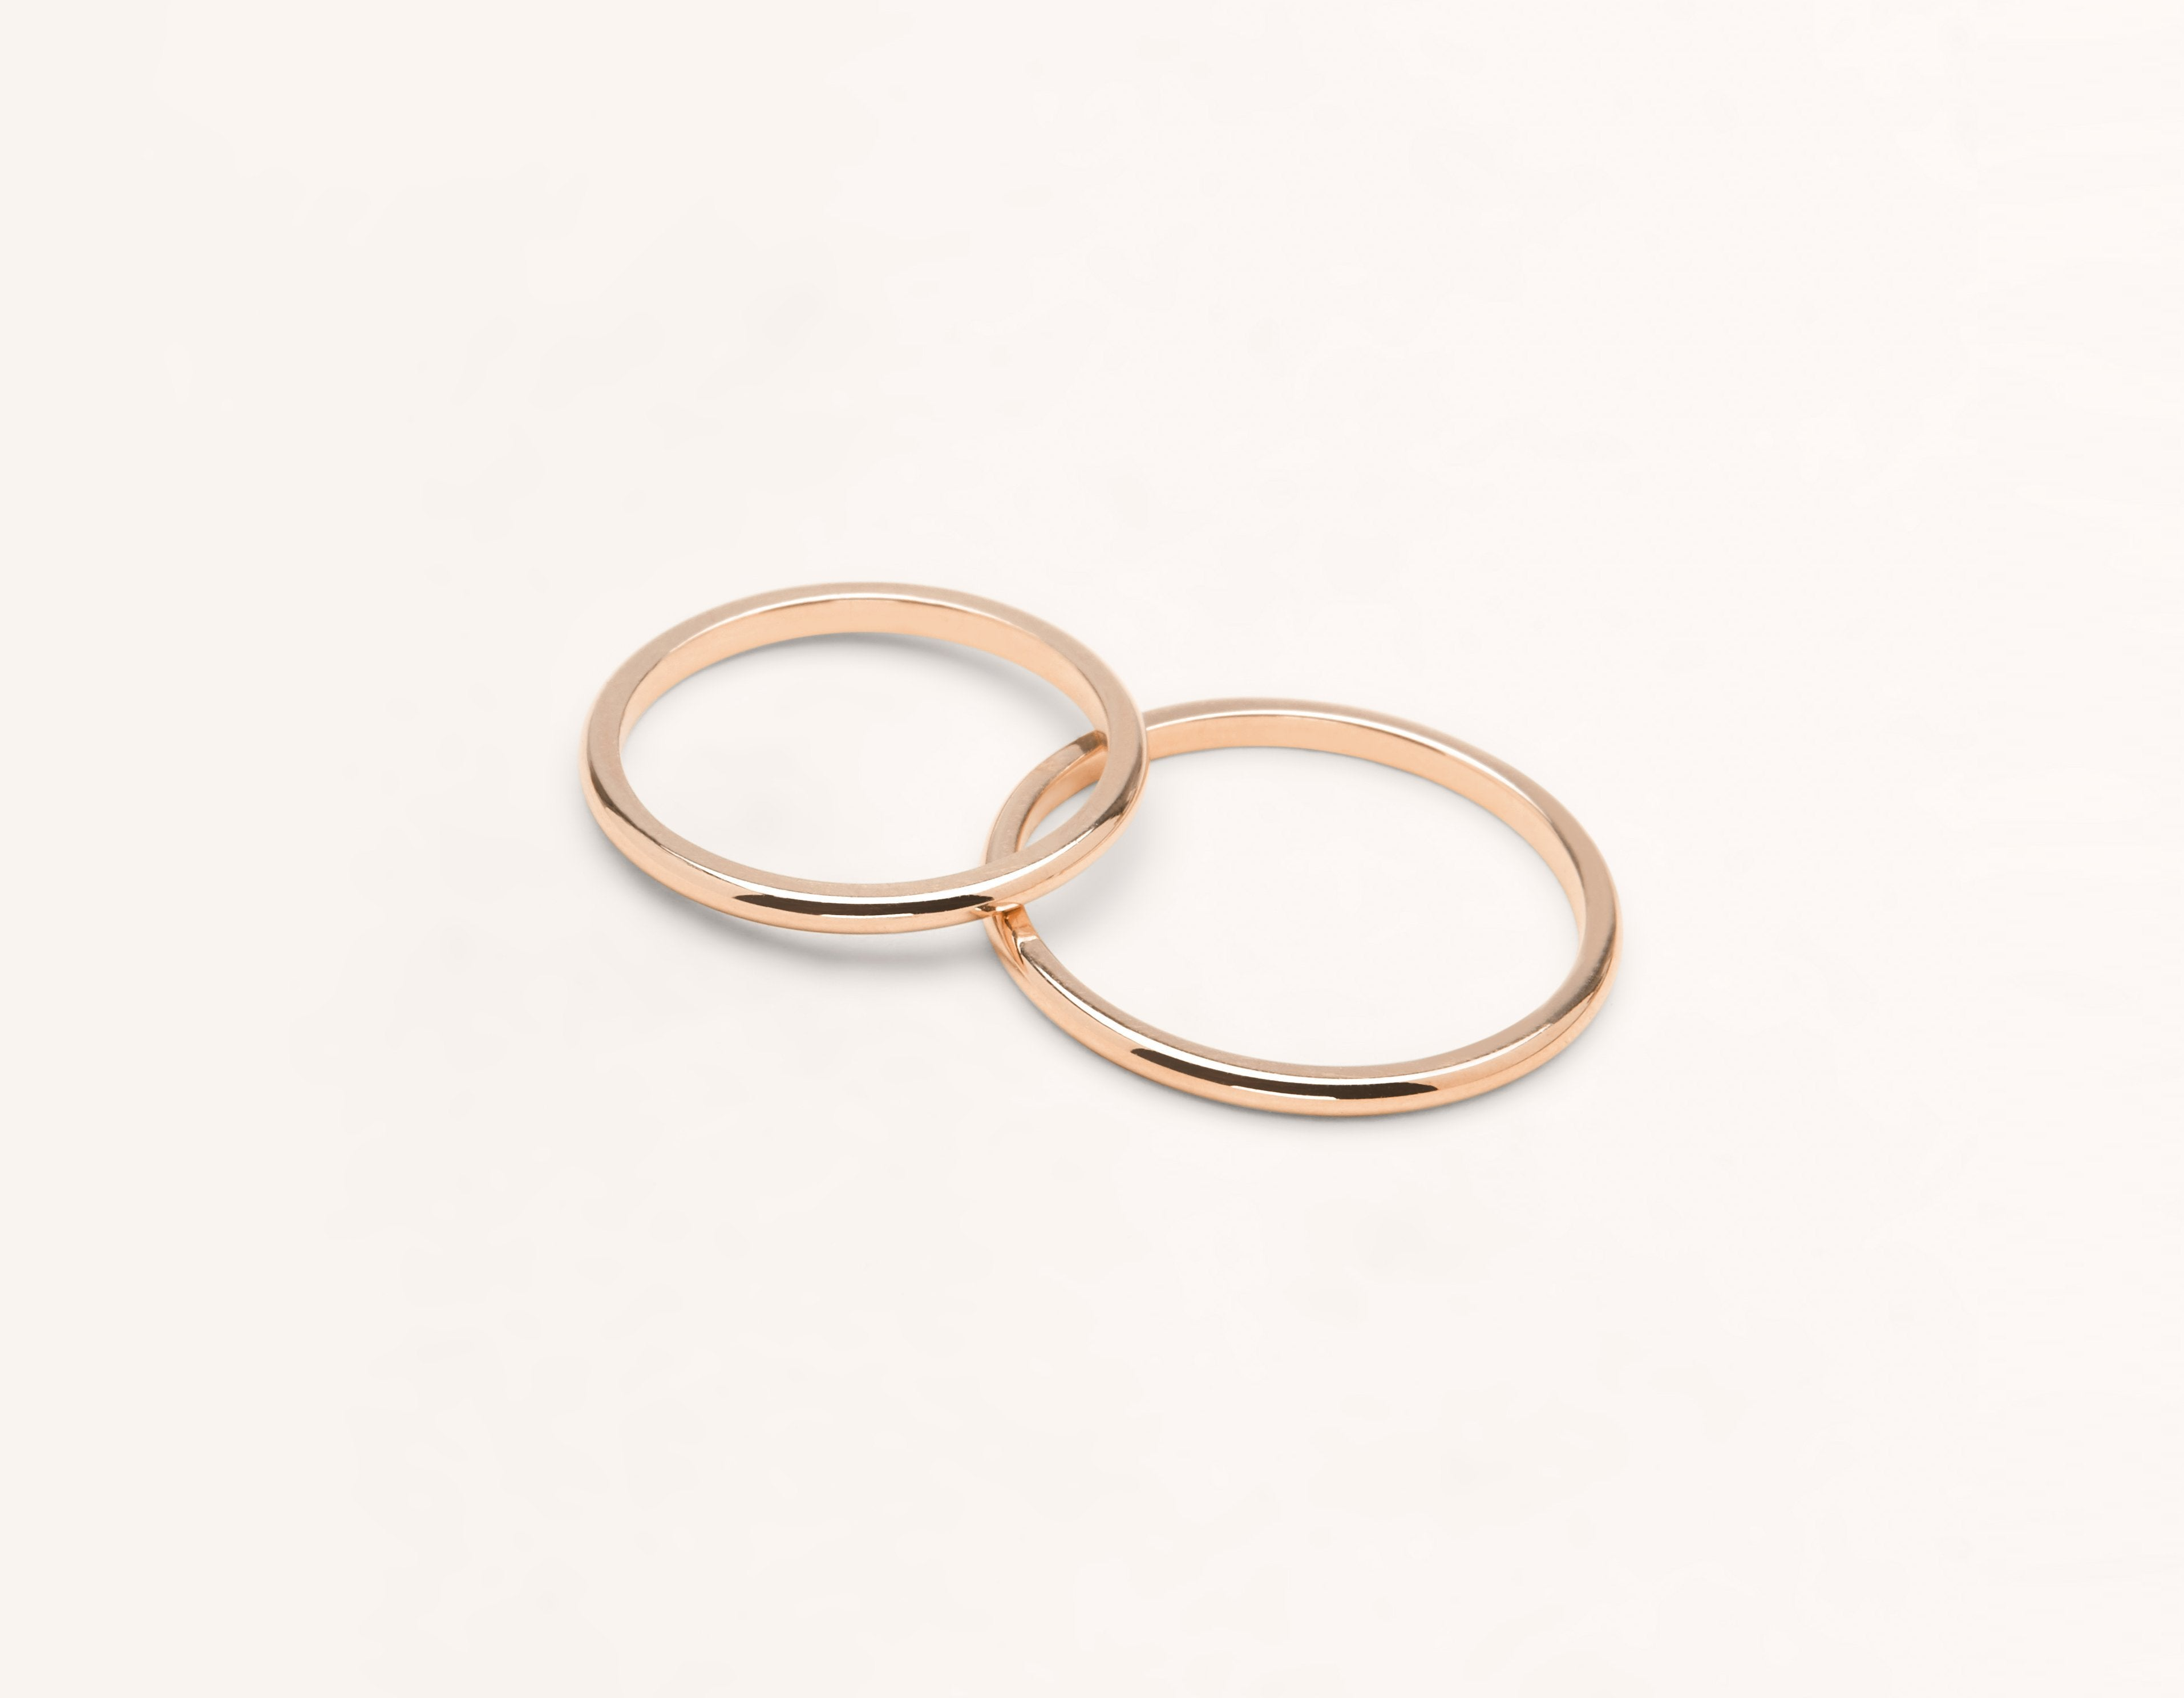 Vrai Oro 18k Solid Rose Gold Wedding Band 1 5 Round Unisex Simple Classic Band